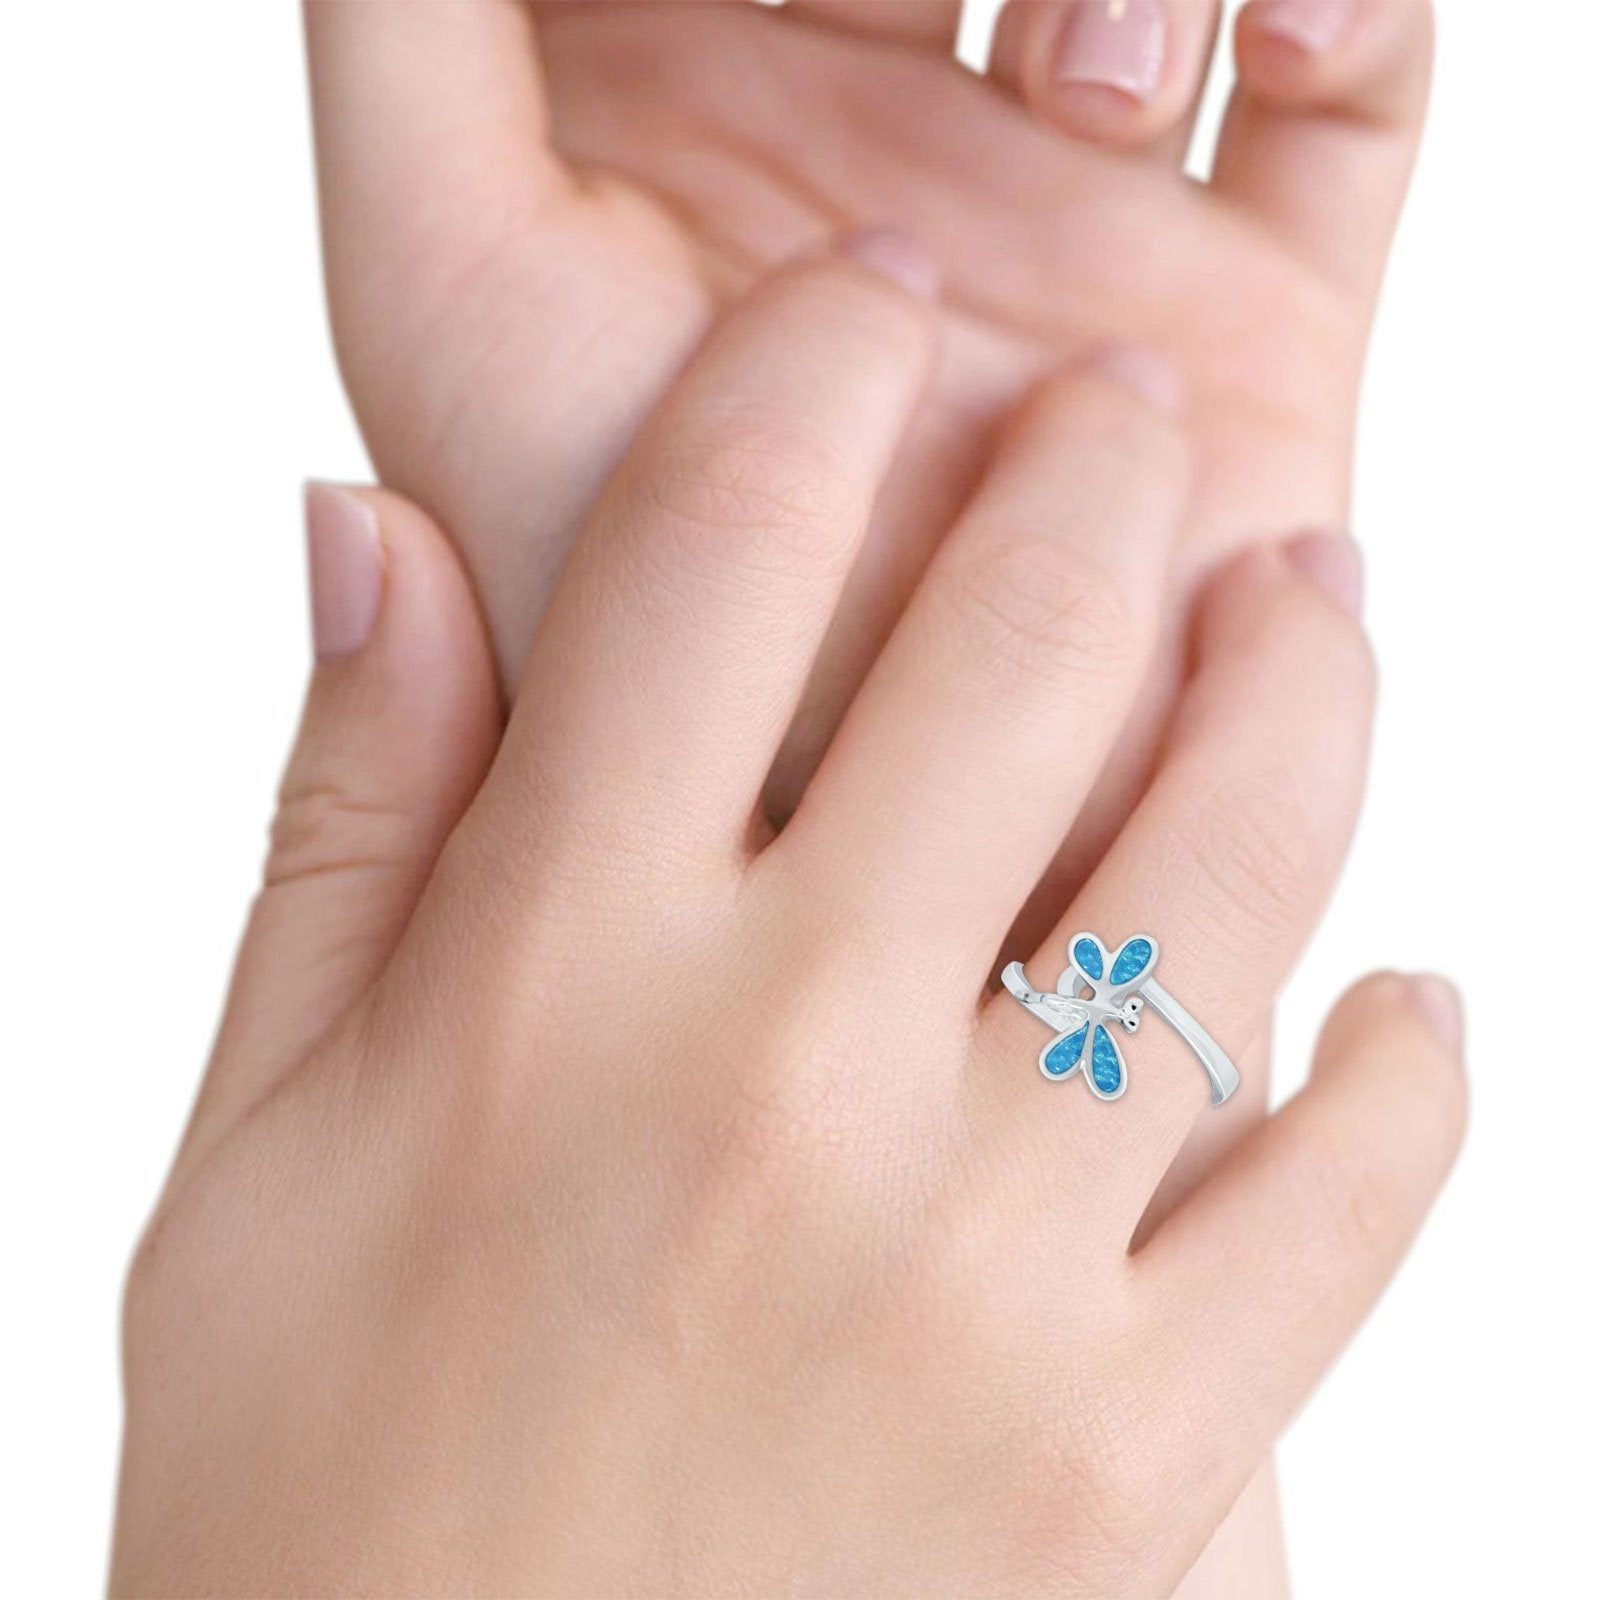 Dragonfly Band Ring Simulated Cubic Zirconia 925 Sterling Silver